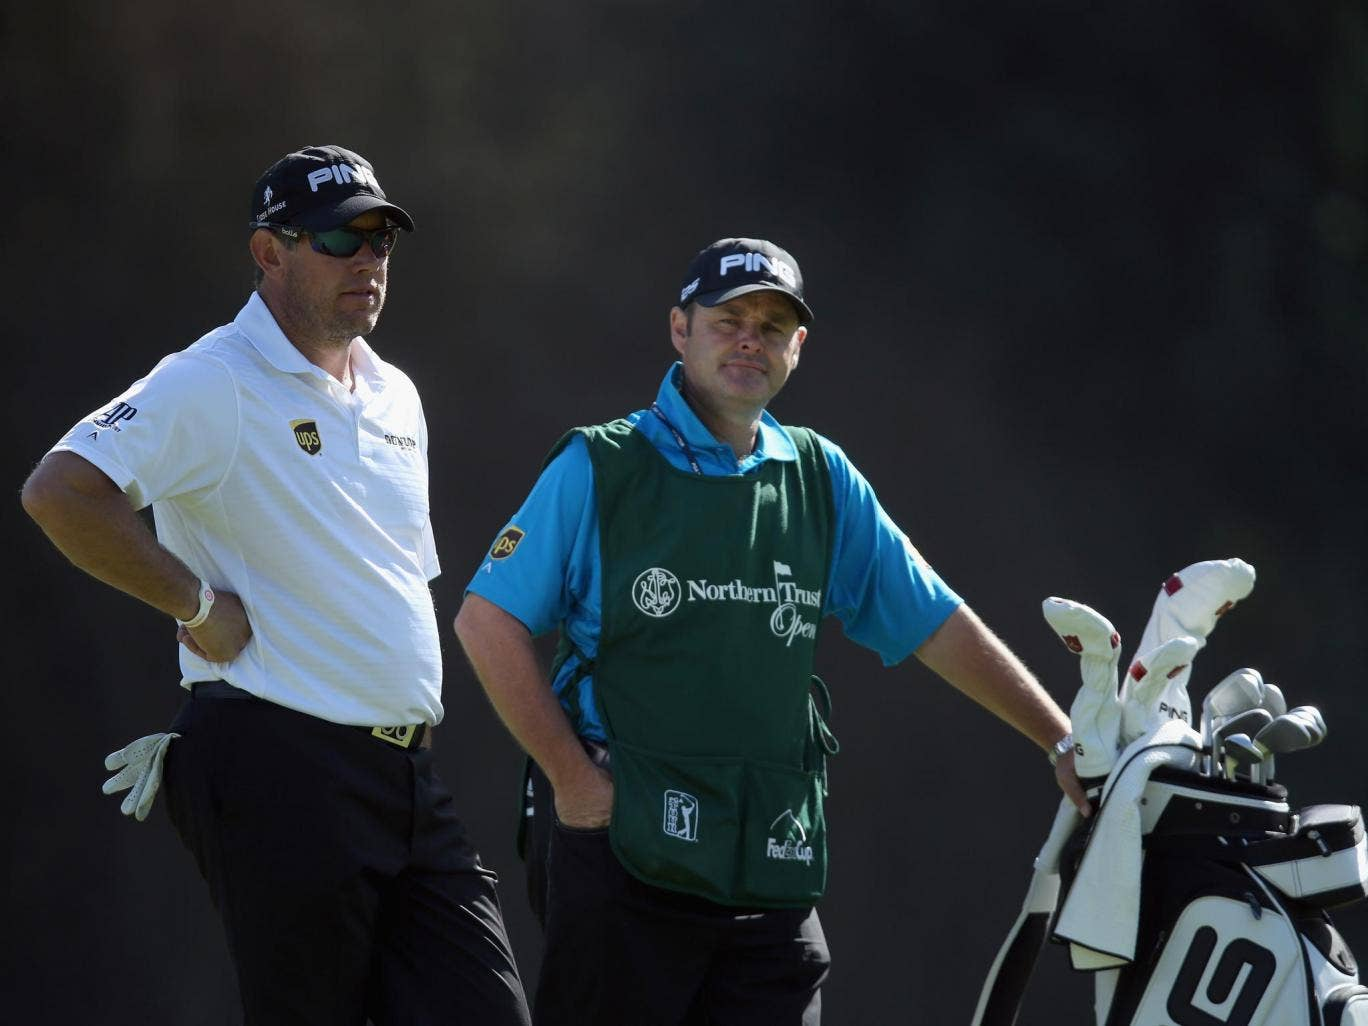 Caddie Billy Foster (right) on course with Lee Westwood